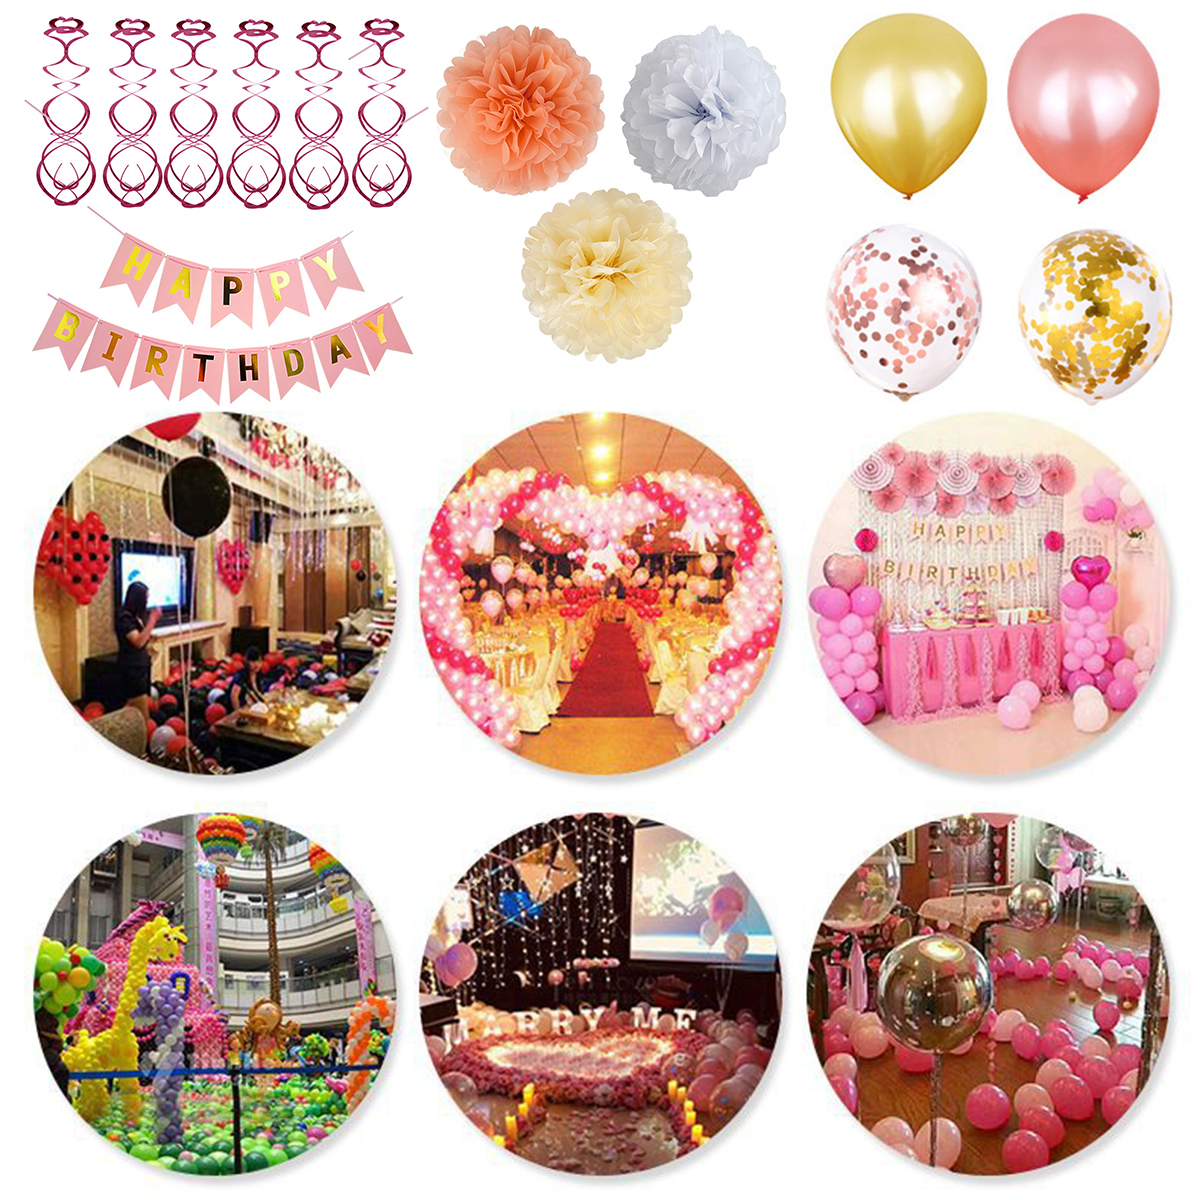 Birthday Party Supplies Decoration Kit 12inch Balloons Happy Birthday Banner Hanging Swirls Latex Balloons Sequins Balloons